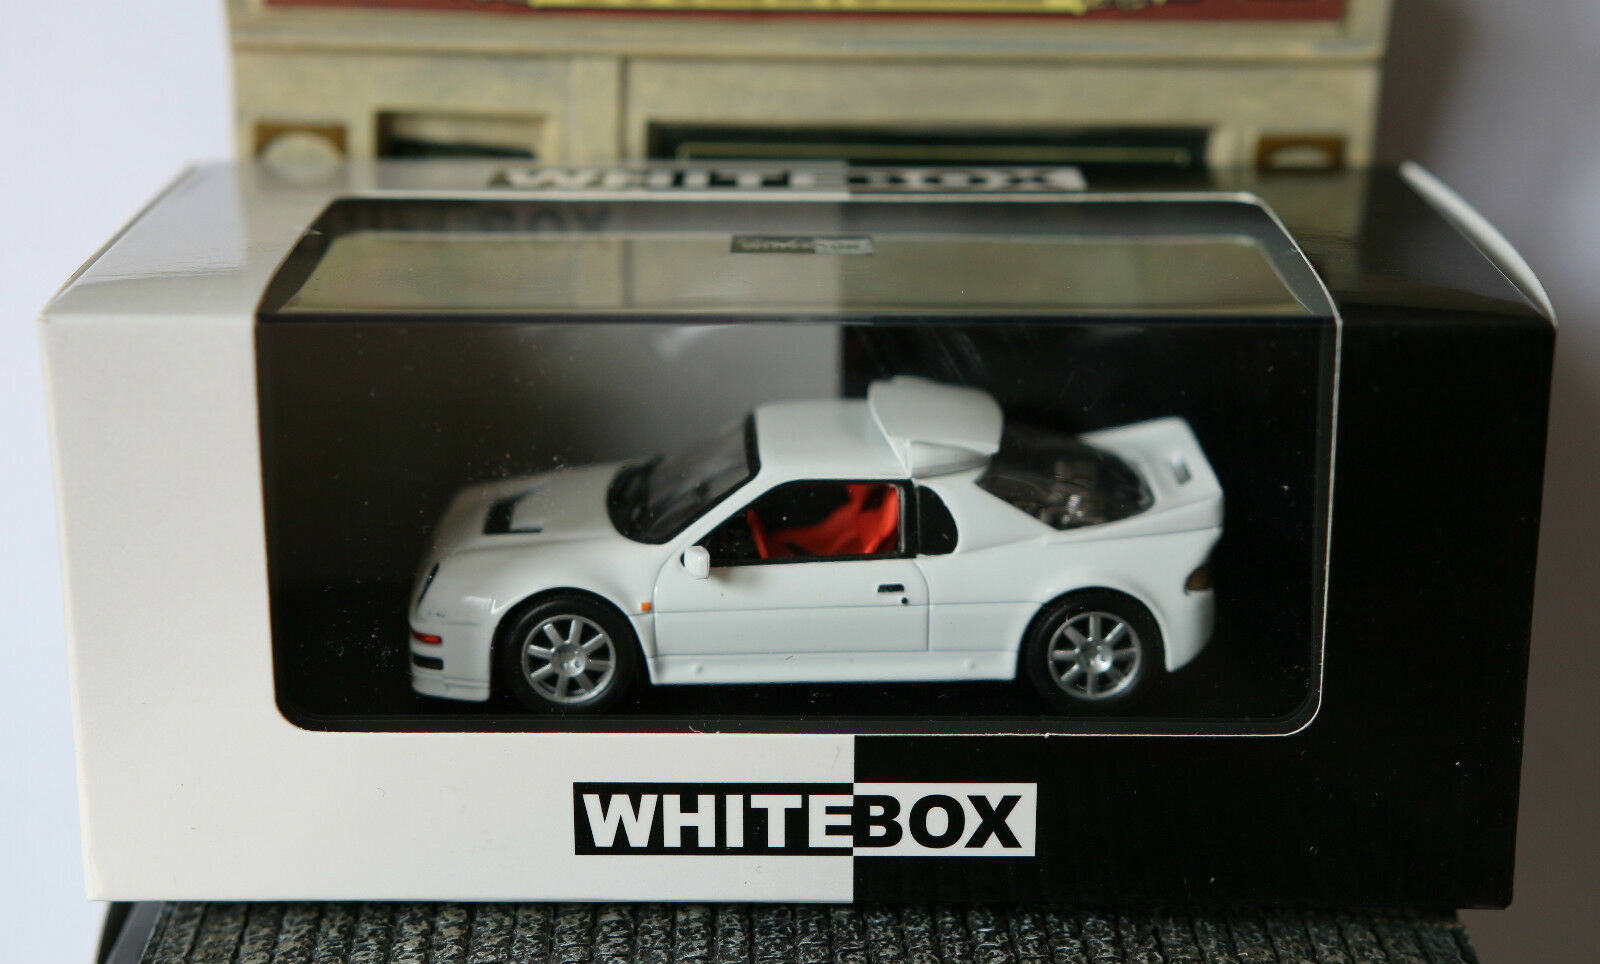 FORD RS 200 blanc 1983 blancBOX WB050 1 43 WEISS BLANCHE blanc LHD LEFT HAND DR